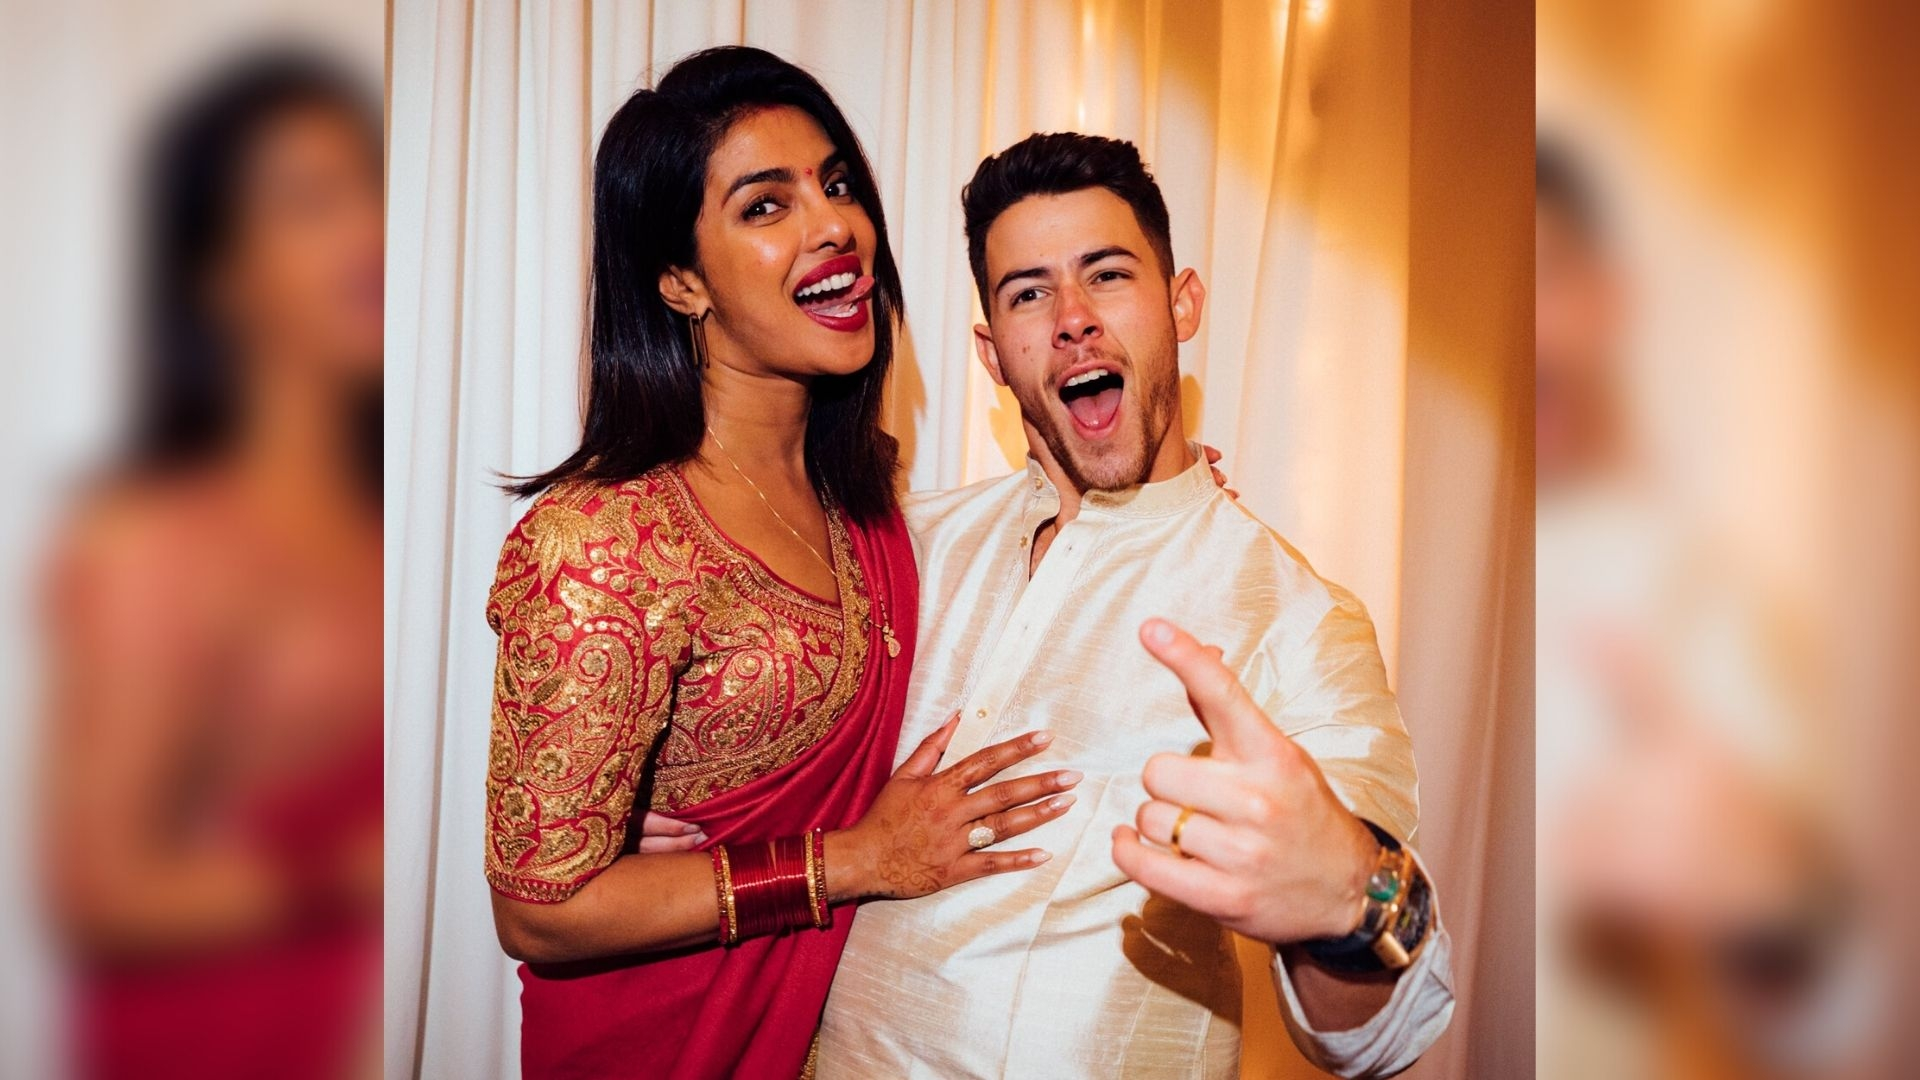 Nick's Karva Chauth Post For PeeCee Causes Laugh Riot on Twitter